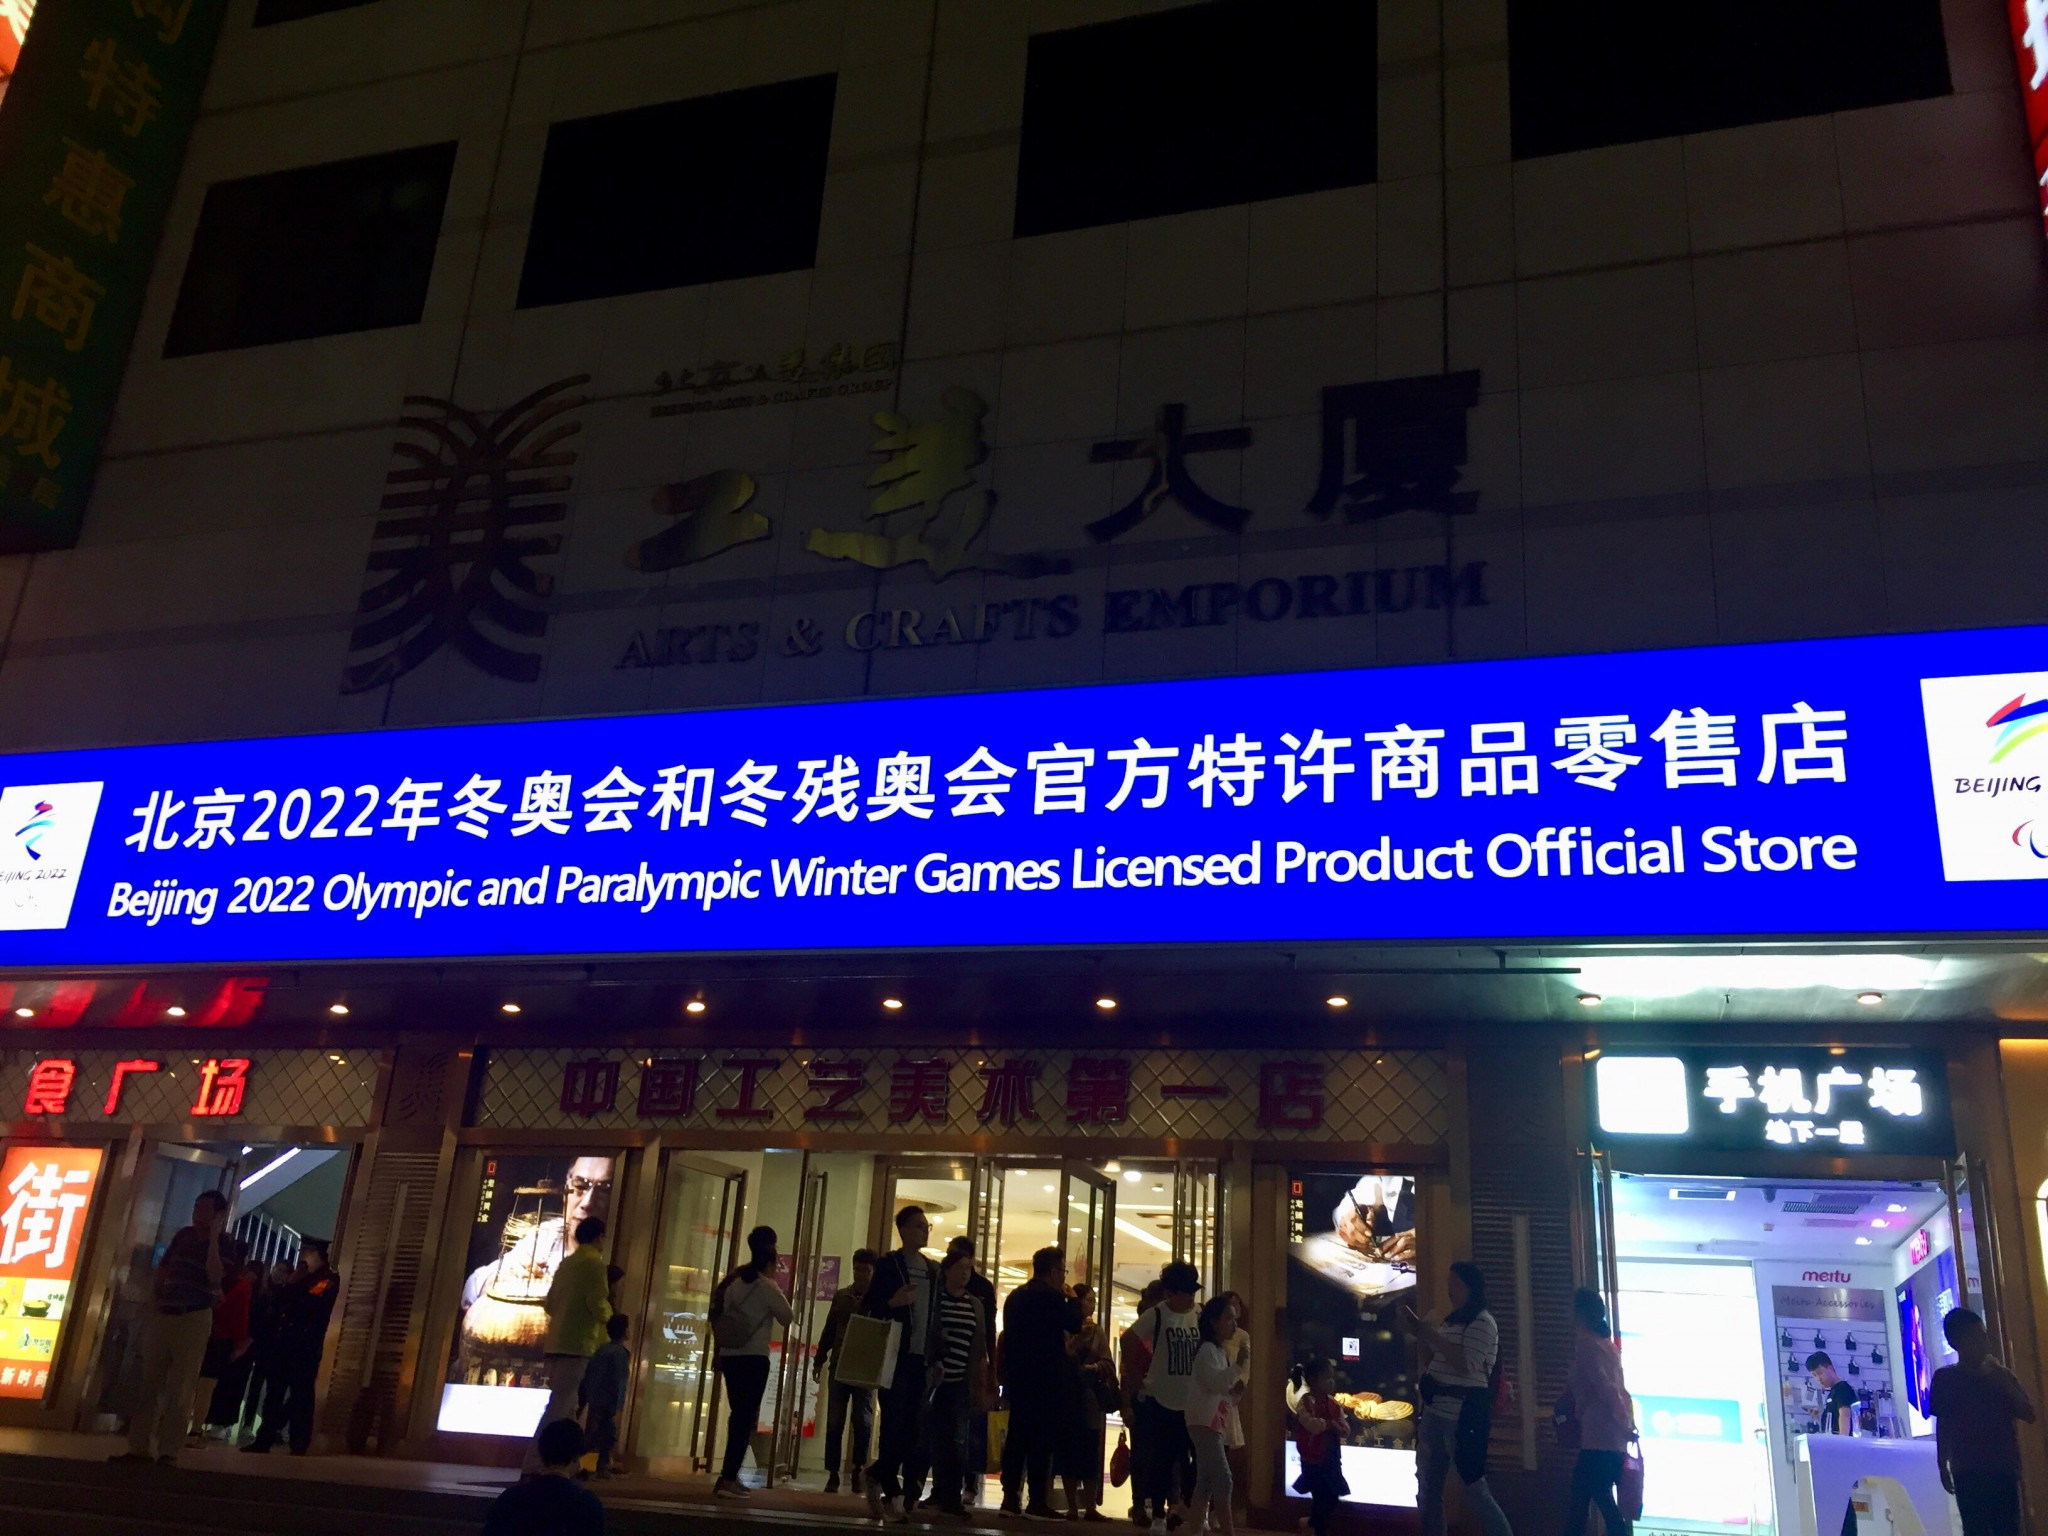 Shops selling official Beijing 2022 merchandise are beginning to pop up across the Chinese capital ©Beijing 2022